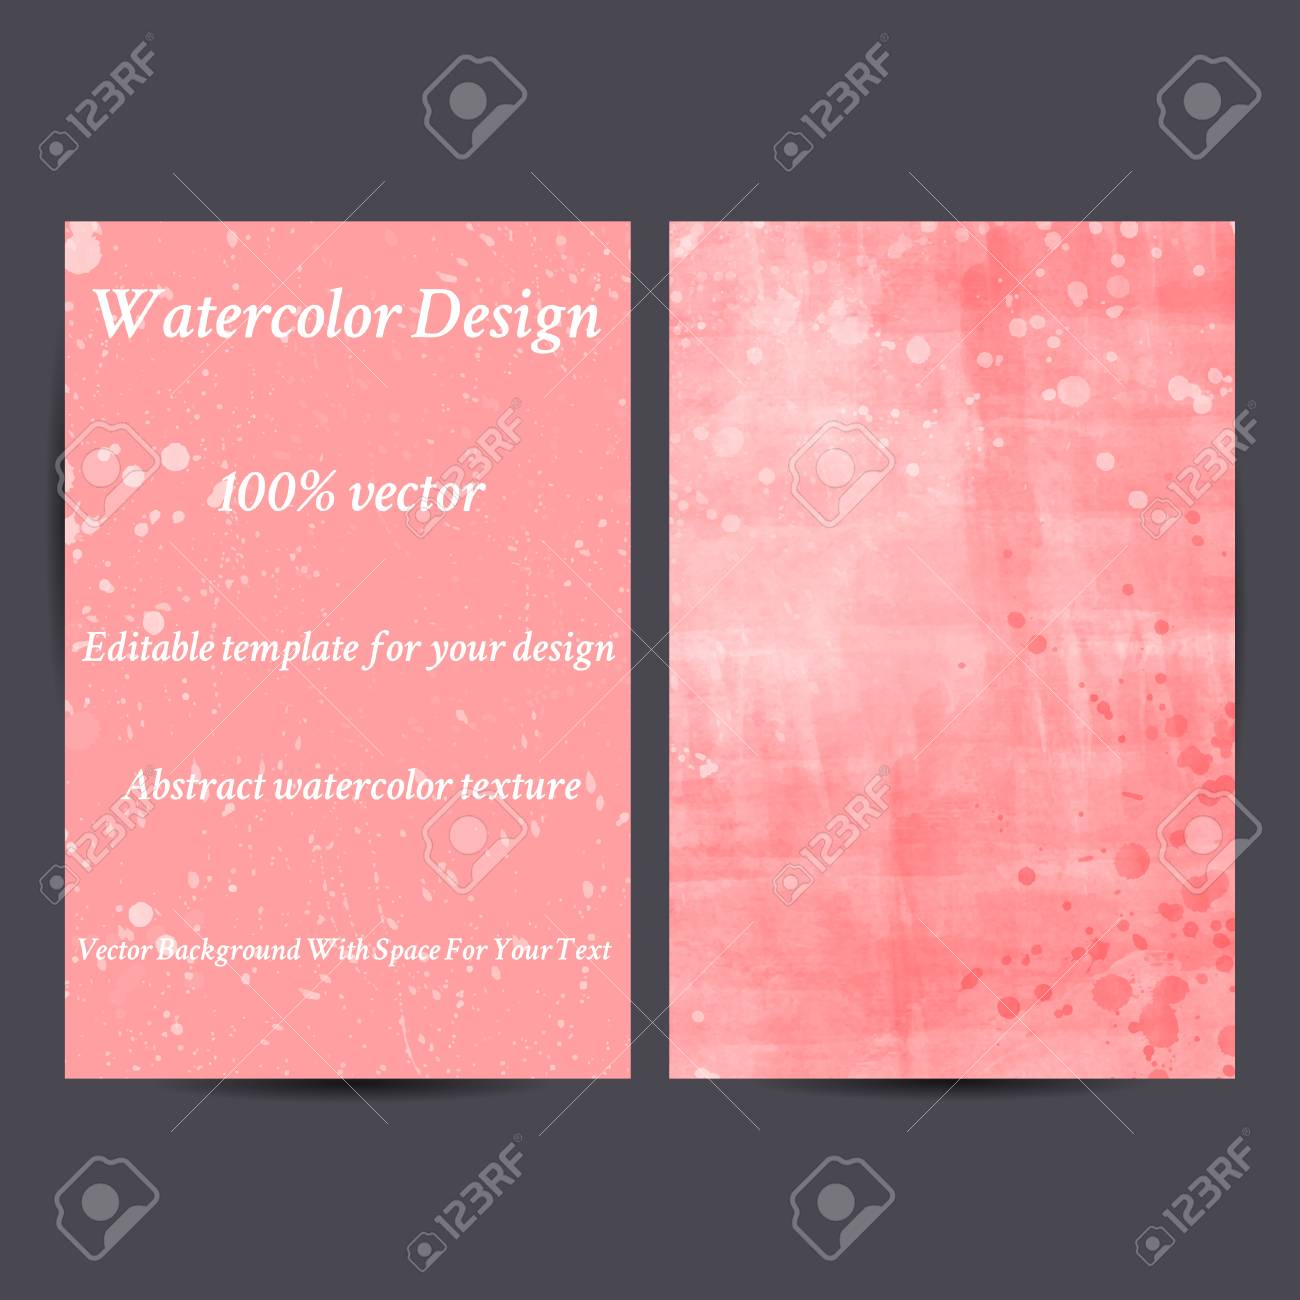 Corporate identity watercolor templatesvitation cardsctor corporate identity watercolor templatesvitation cardsctor colorful abstract background for your stopboris Gallery